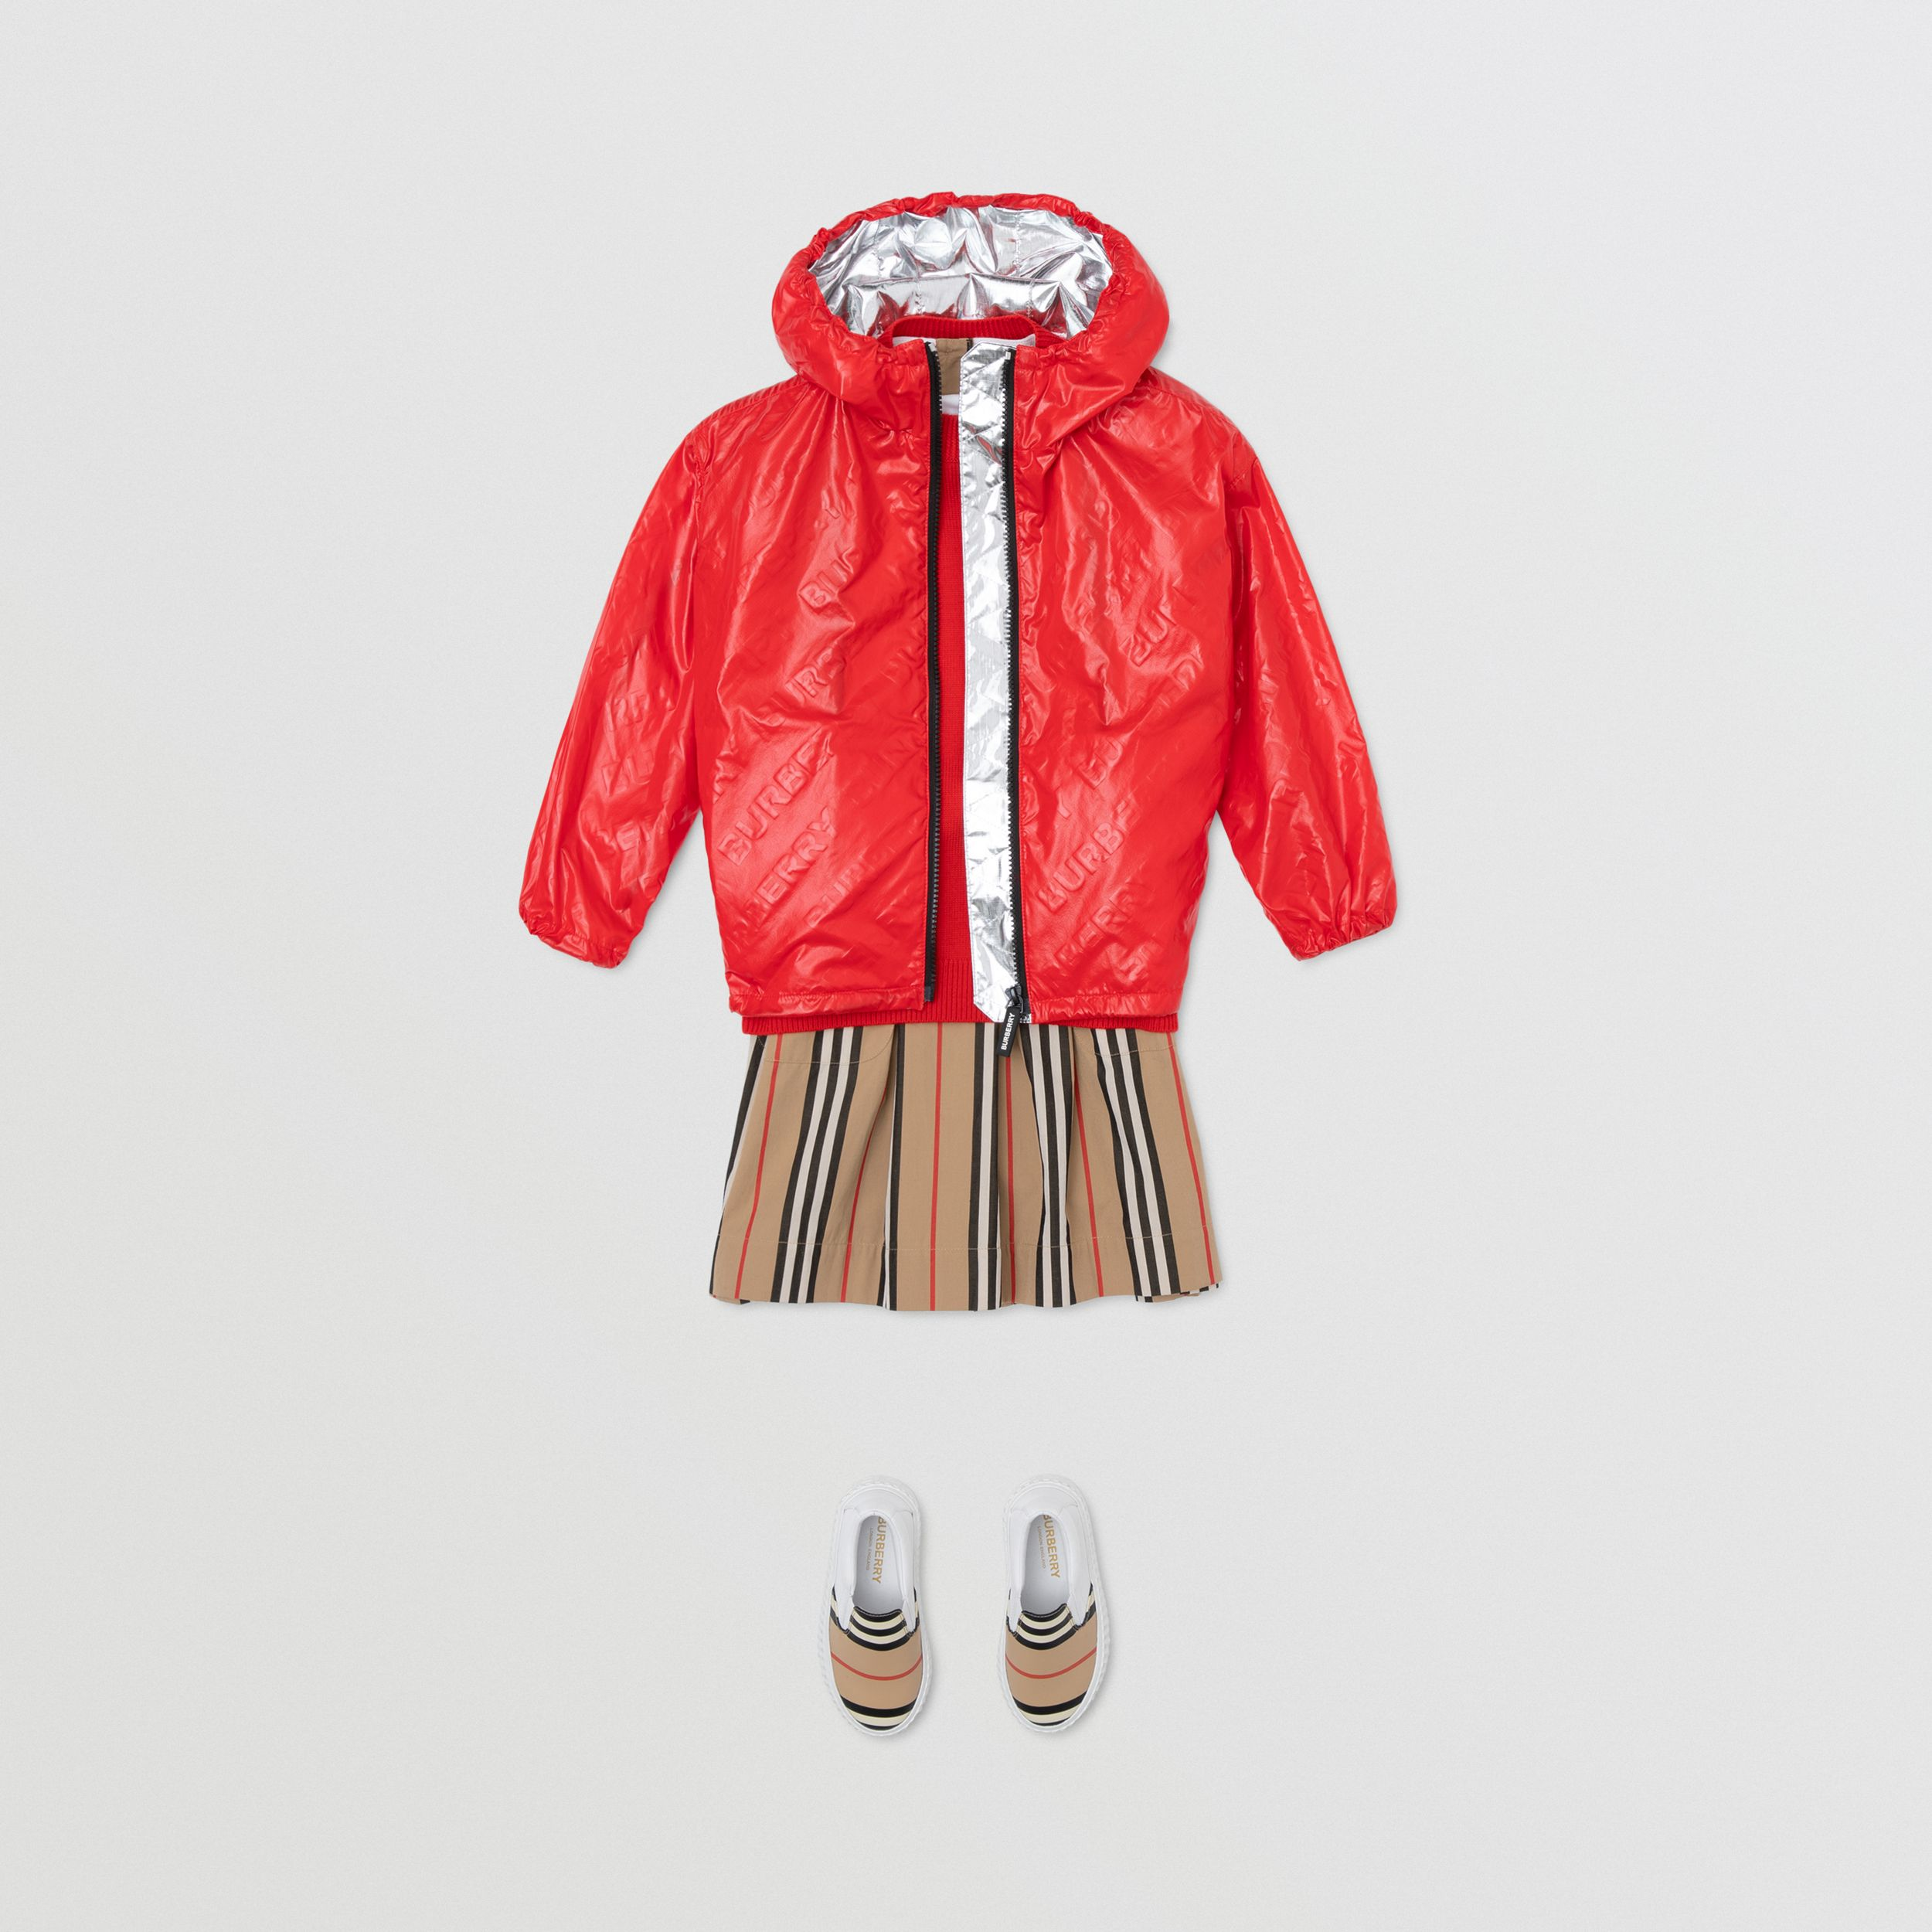 Logo Print Lightweight Hooded Jacket in Bright Red | Burberry - 4